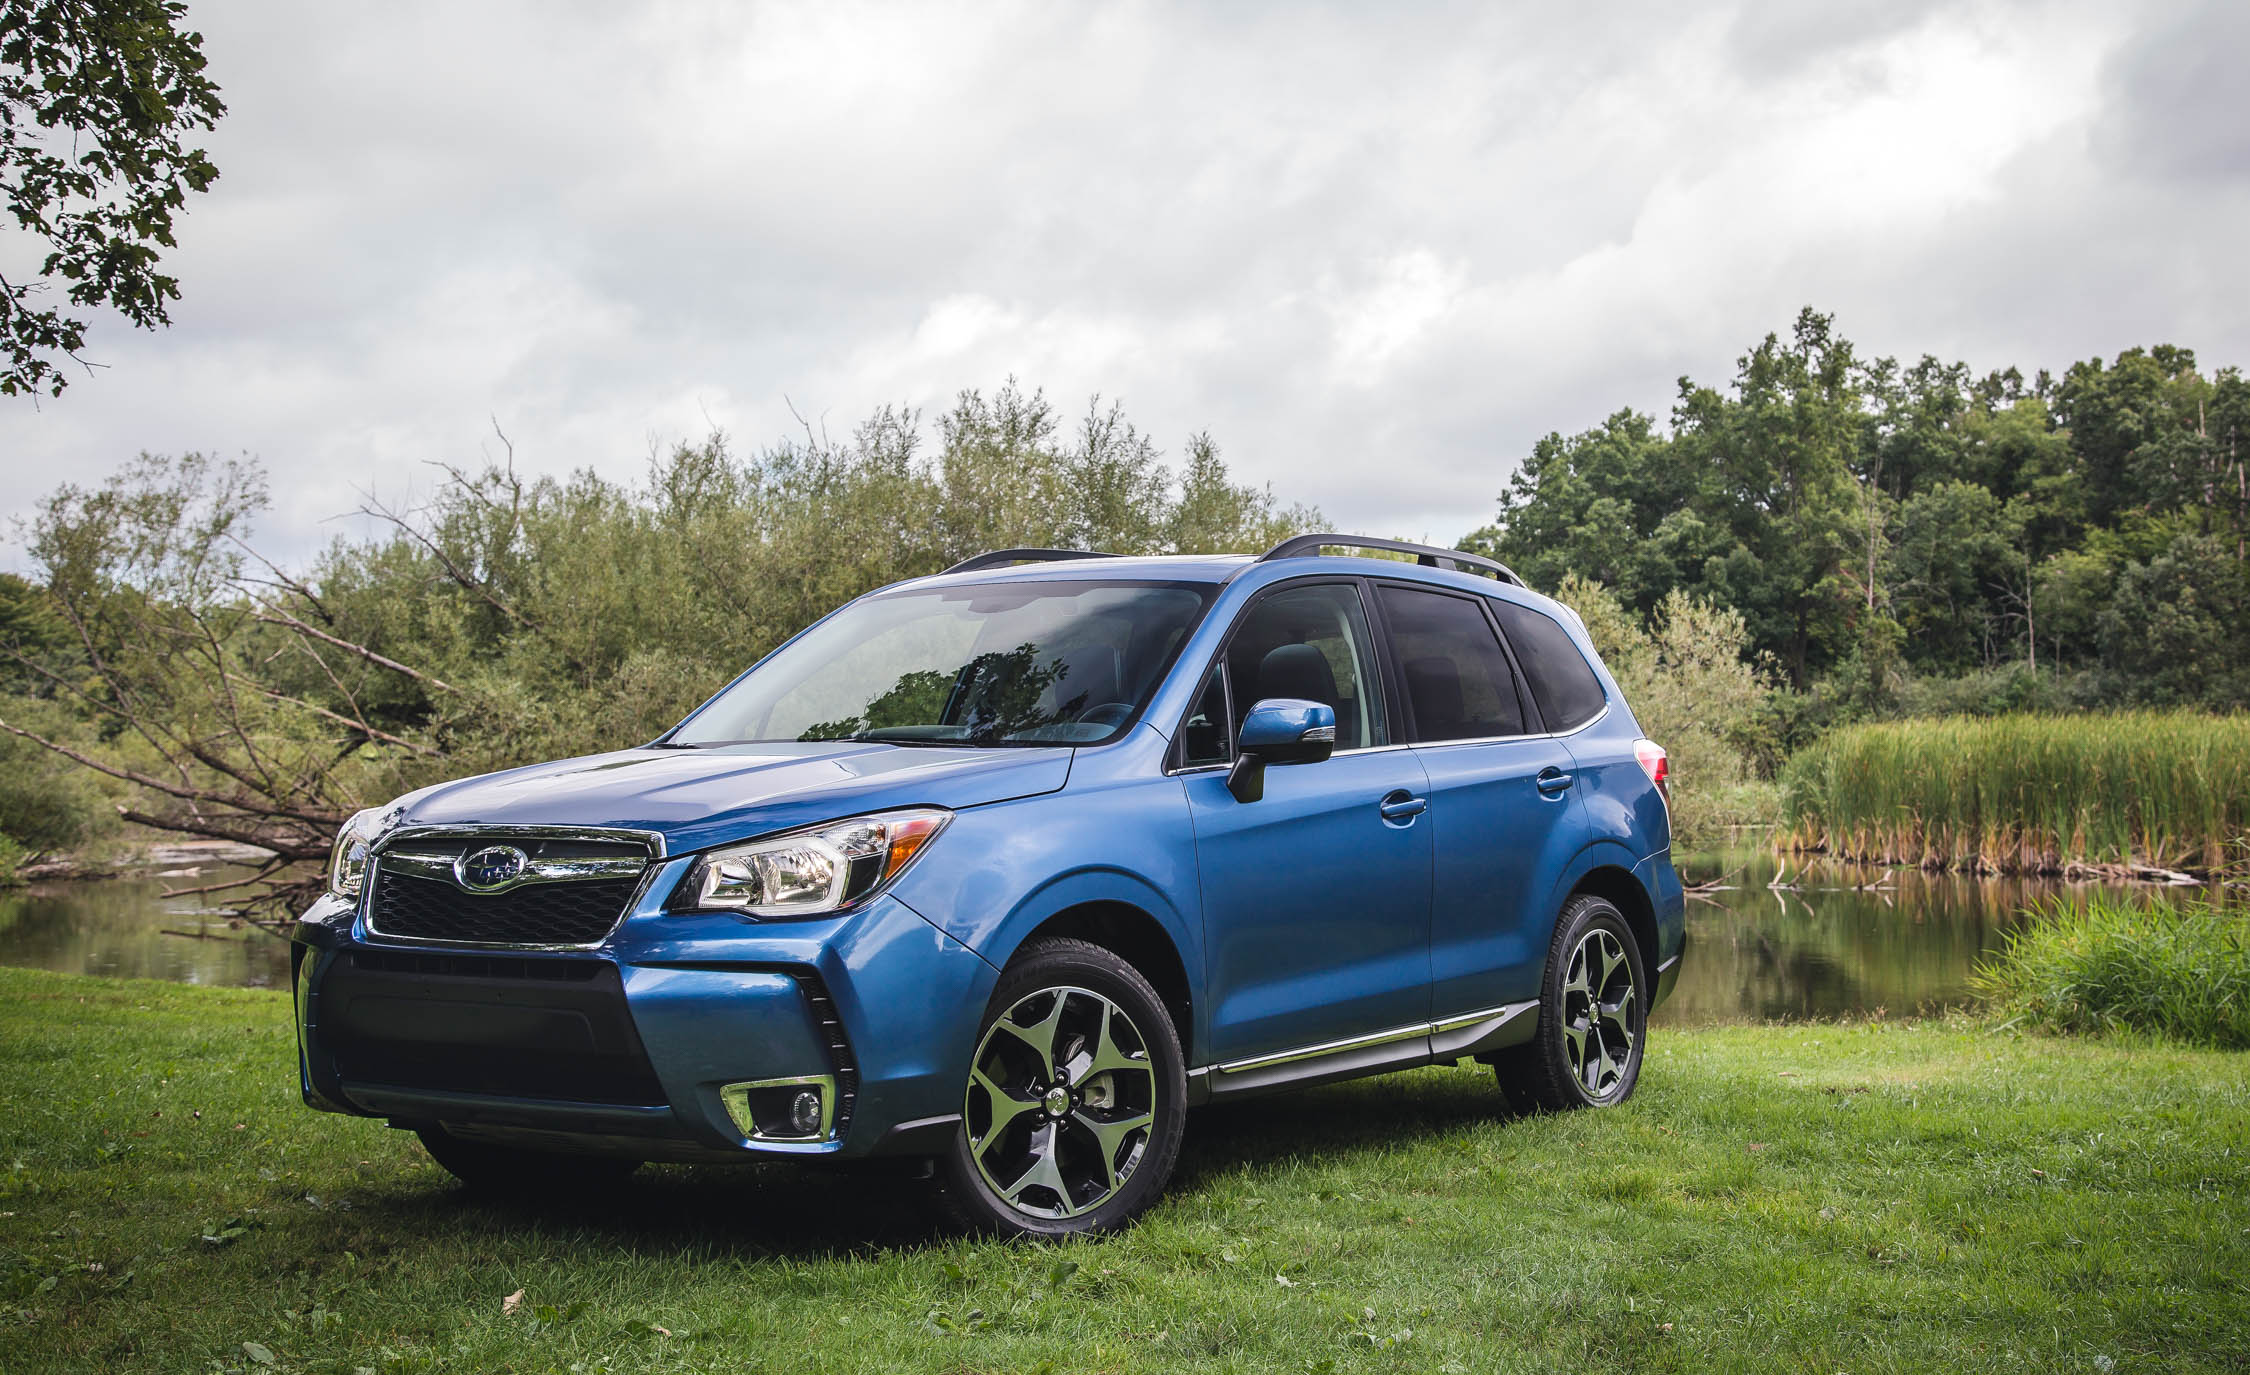 2016 Subaru Forester 2.0XT Touring Exterior Full Front and Side